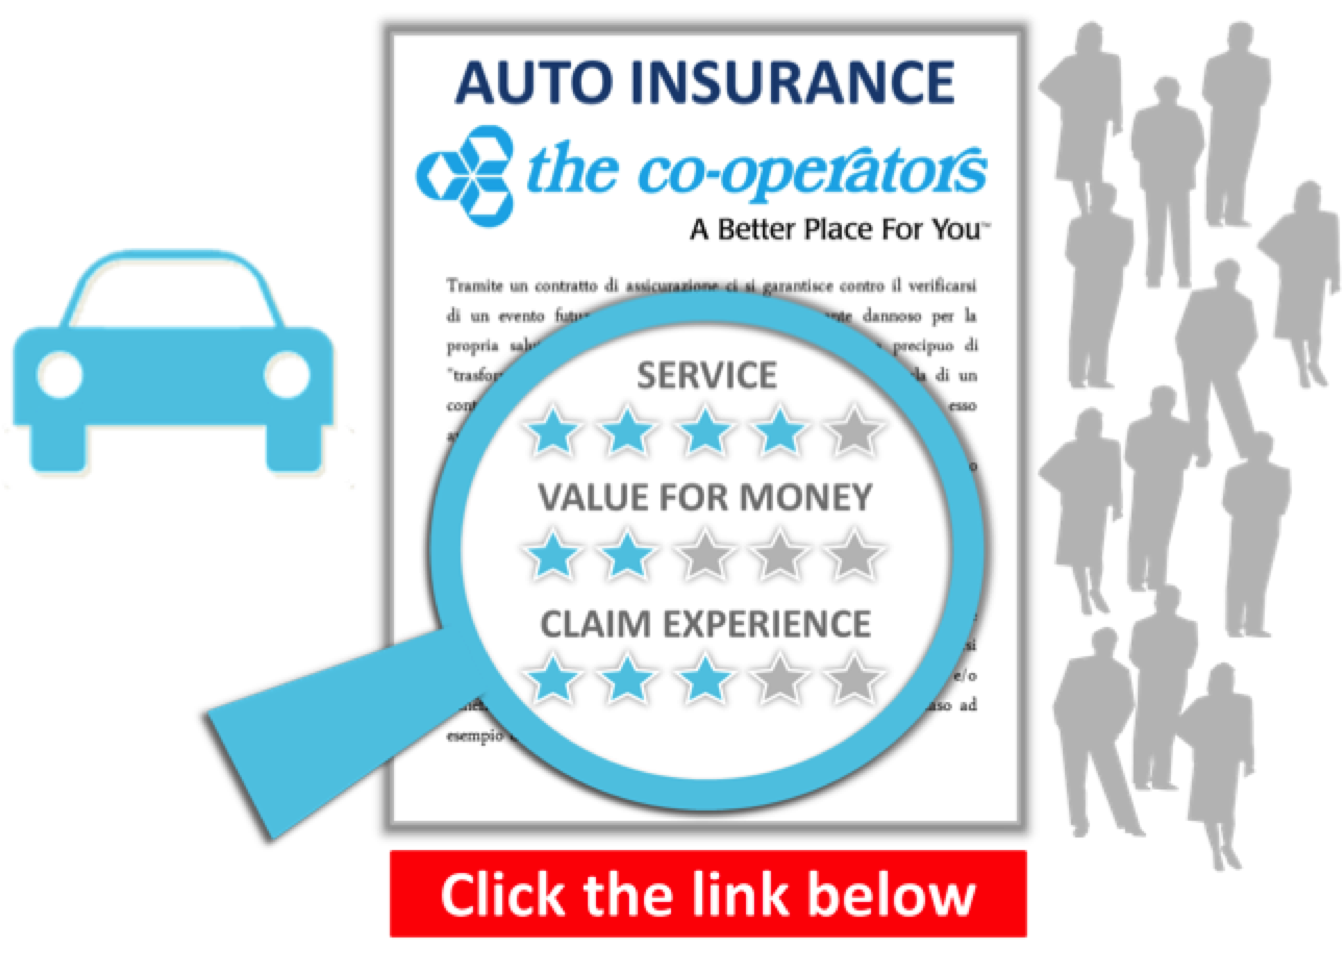 Independent Consumer Reviews For Co Operators Auto Insurance